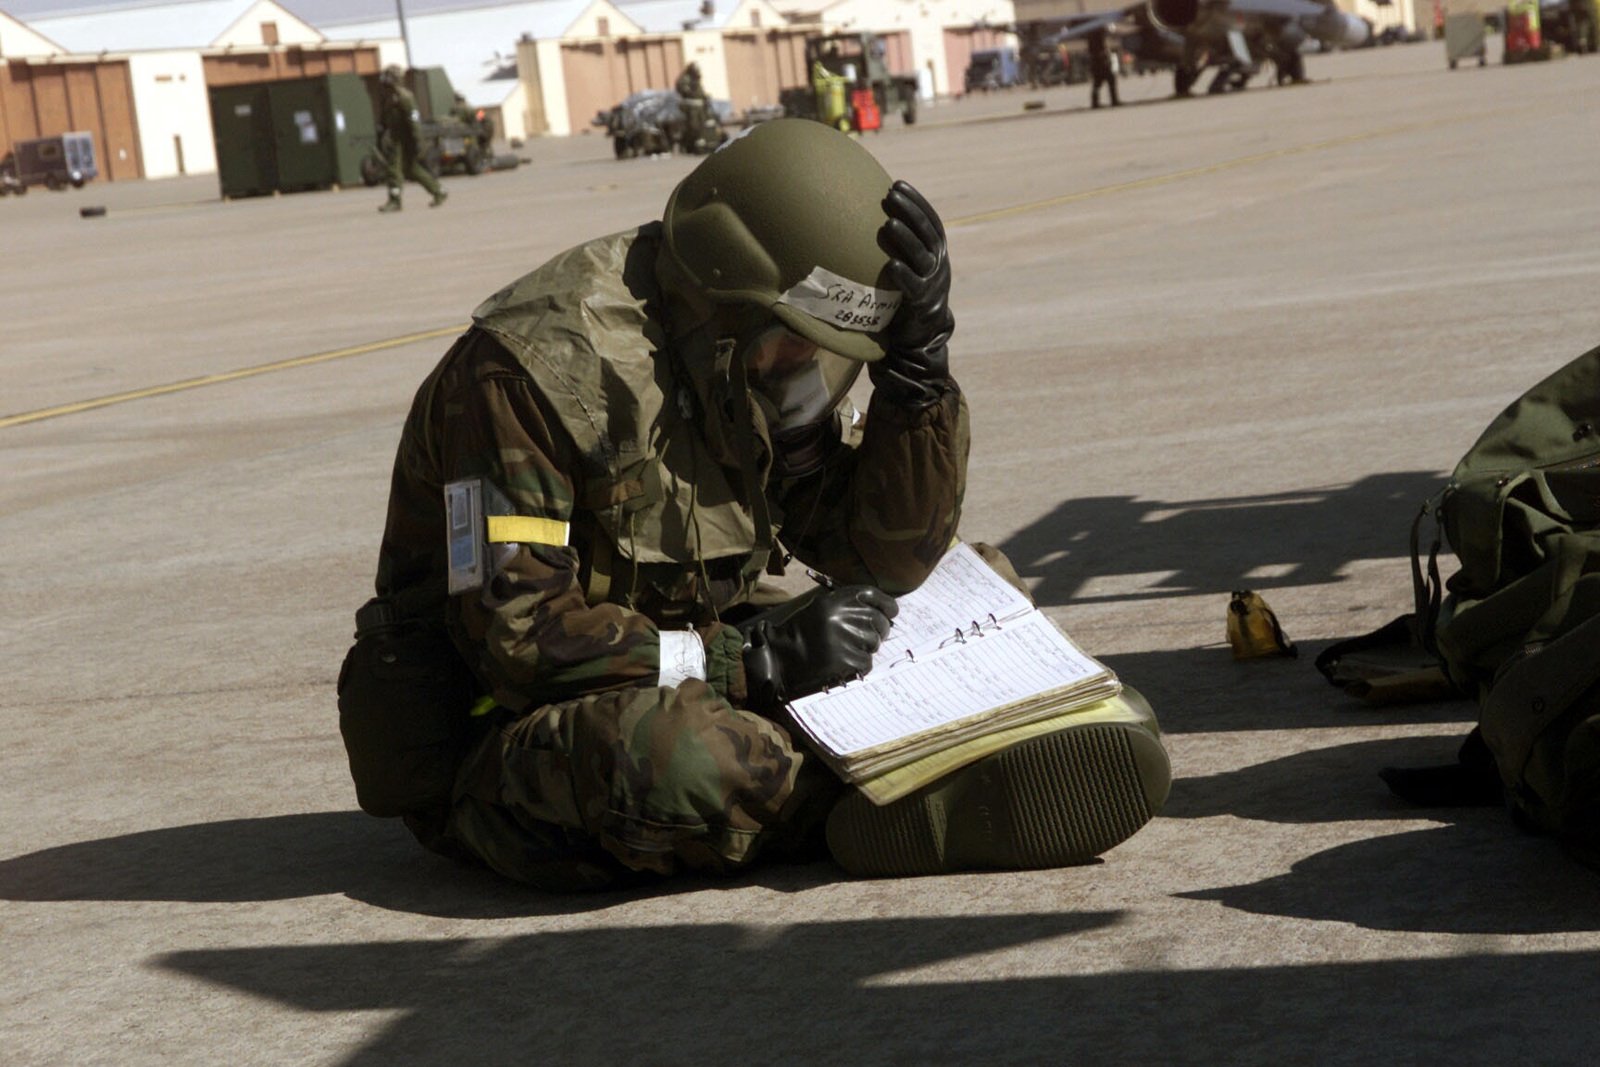 US Air Force AIRMAN First Class Chad Armold makes entry in his log book, while wearing Mission-Oriented Protective Posture response level 4 (MOPP-4) gear at Cannon Air Force Base, New Mexico